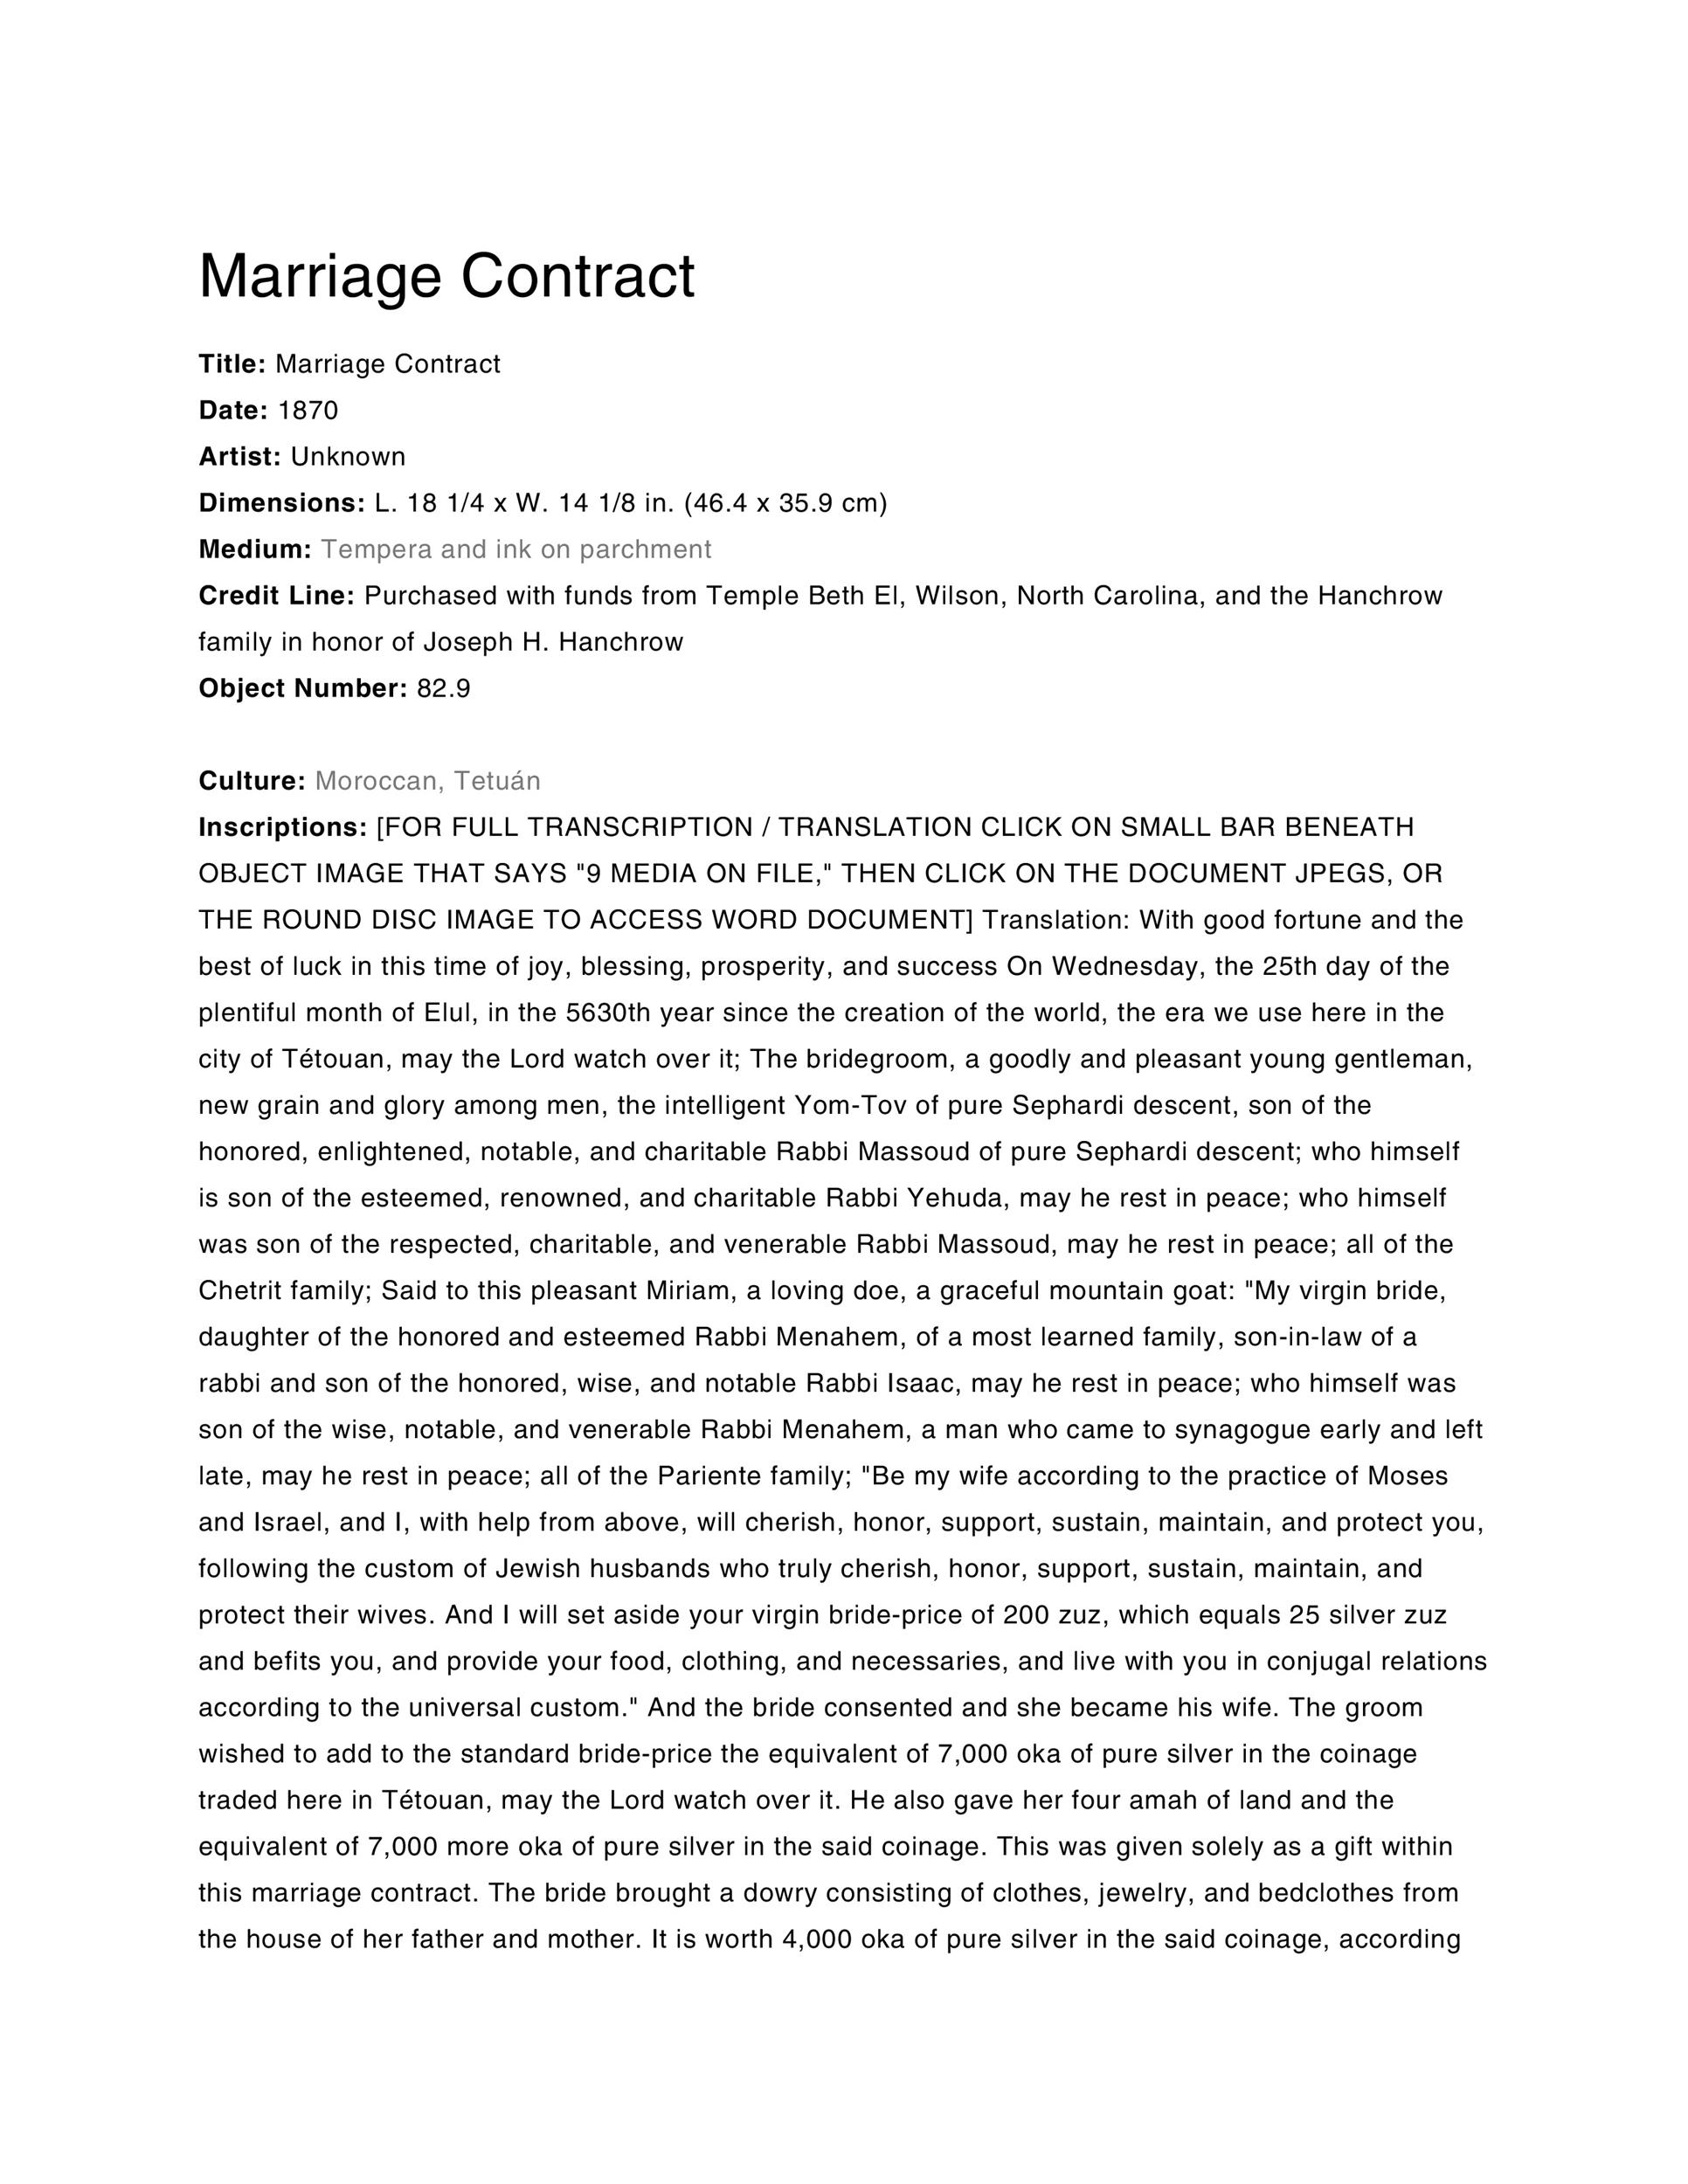 Free marriage contract template 33